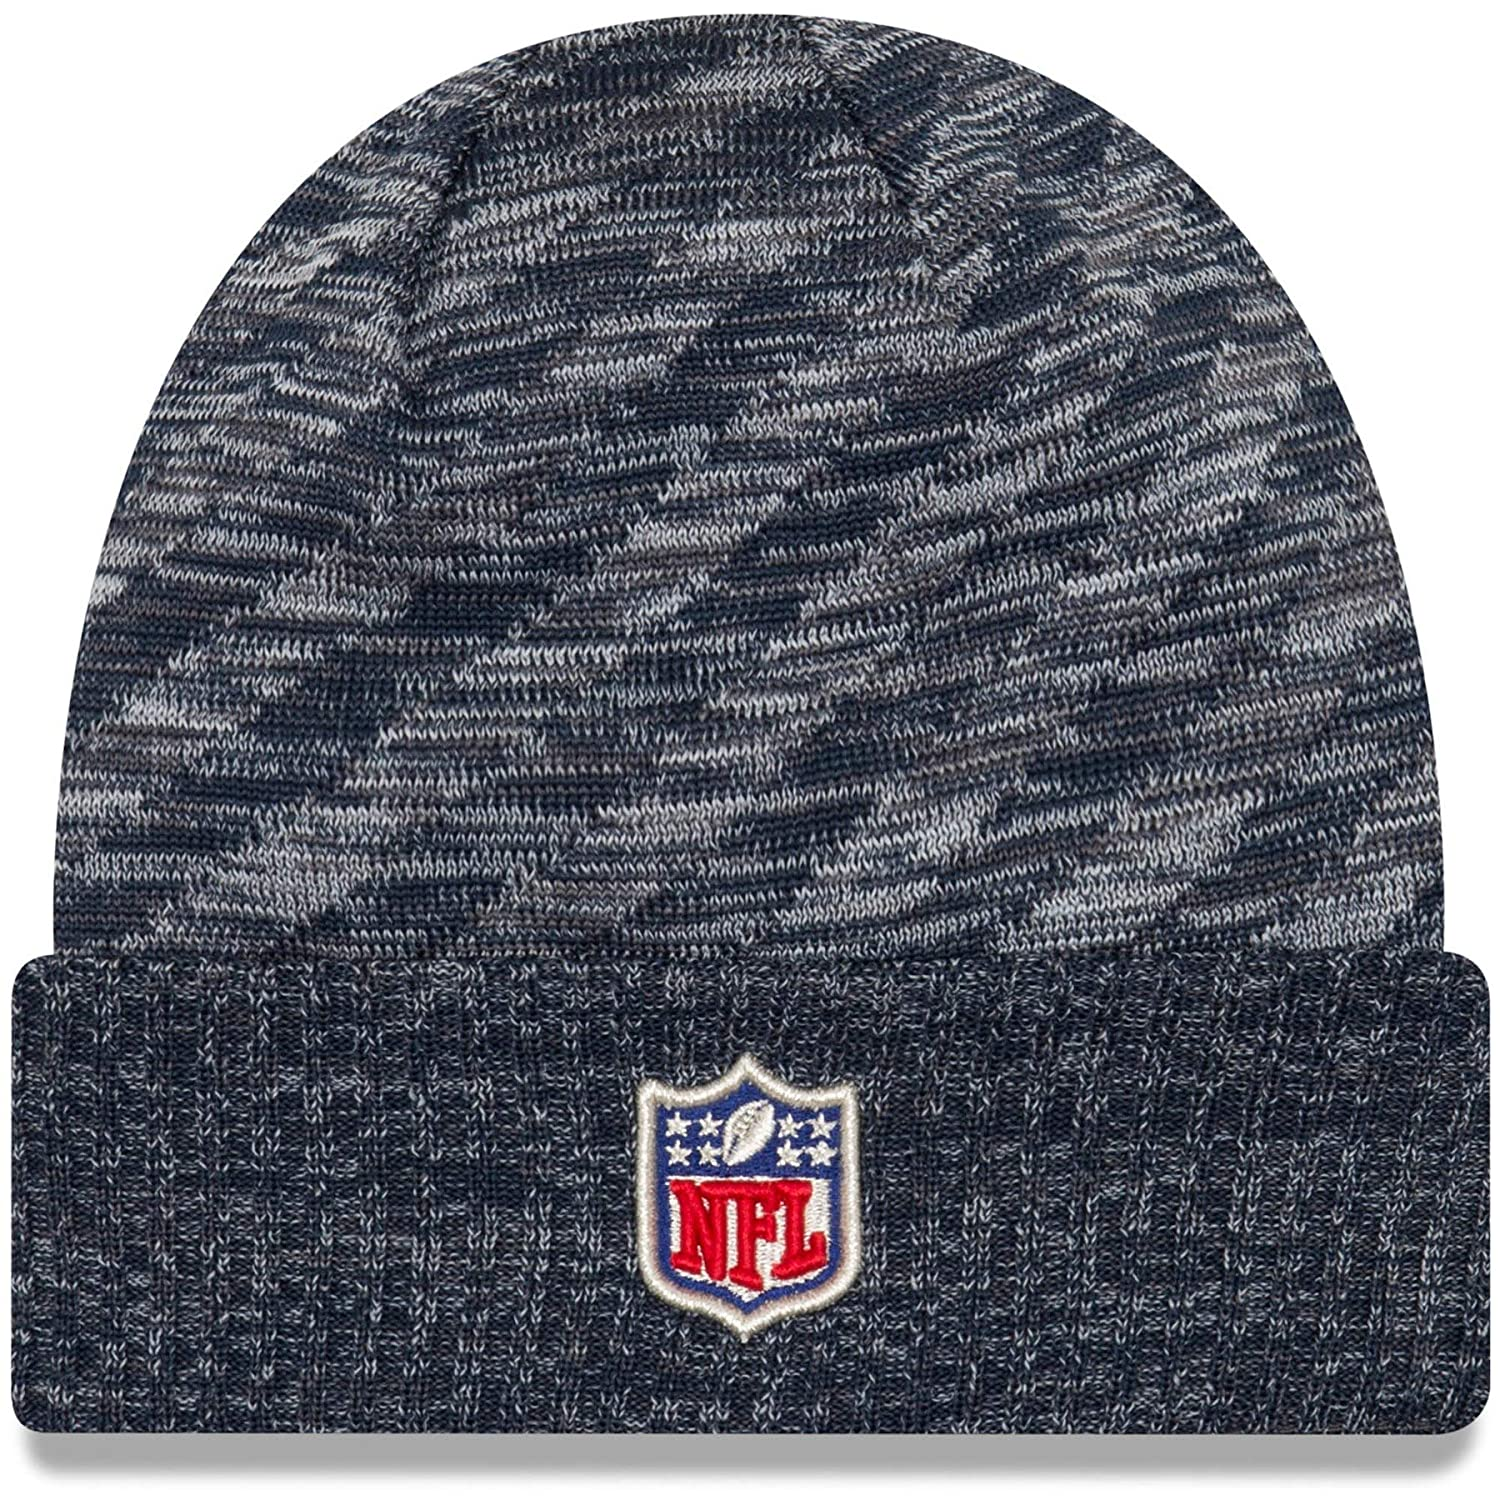 Amazon.com  New Era New England Patriots Knit On Field 18 TD Winter Hat  Navy Grey Size One Size  Clothing afb70f9a26d